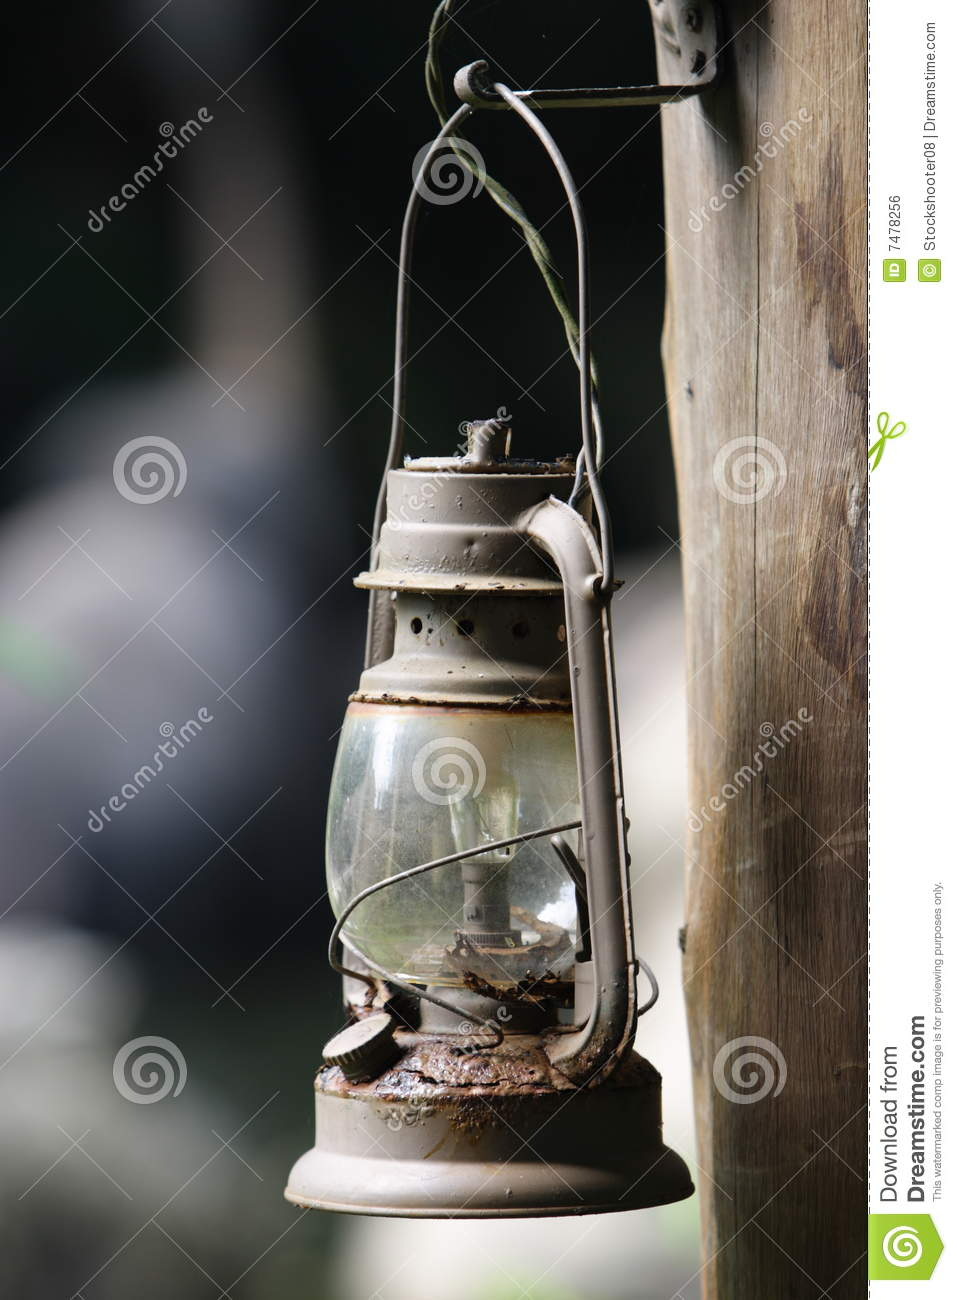 Related Keywords Suggestions For Old Lamp Light